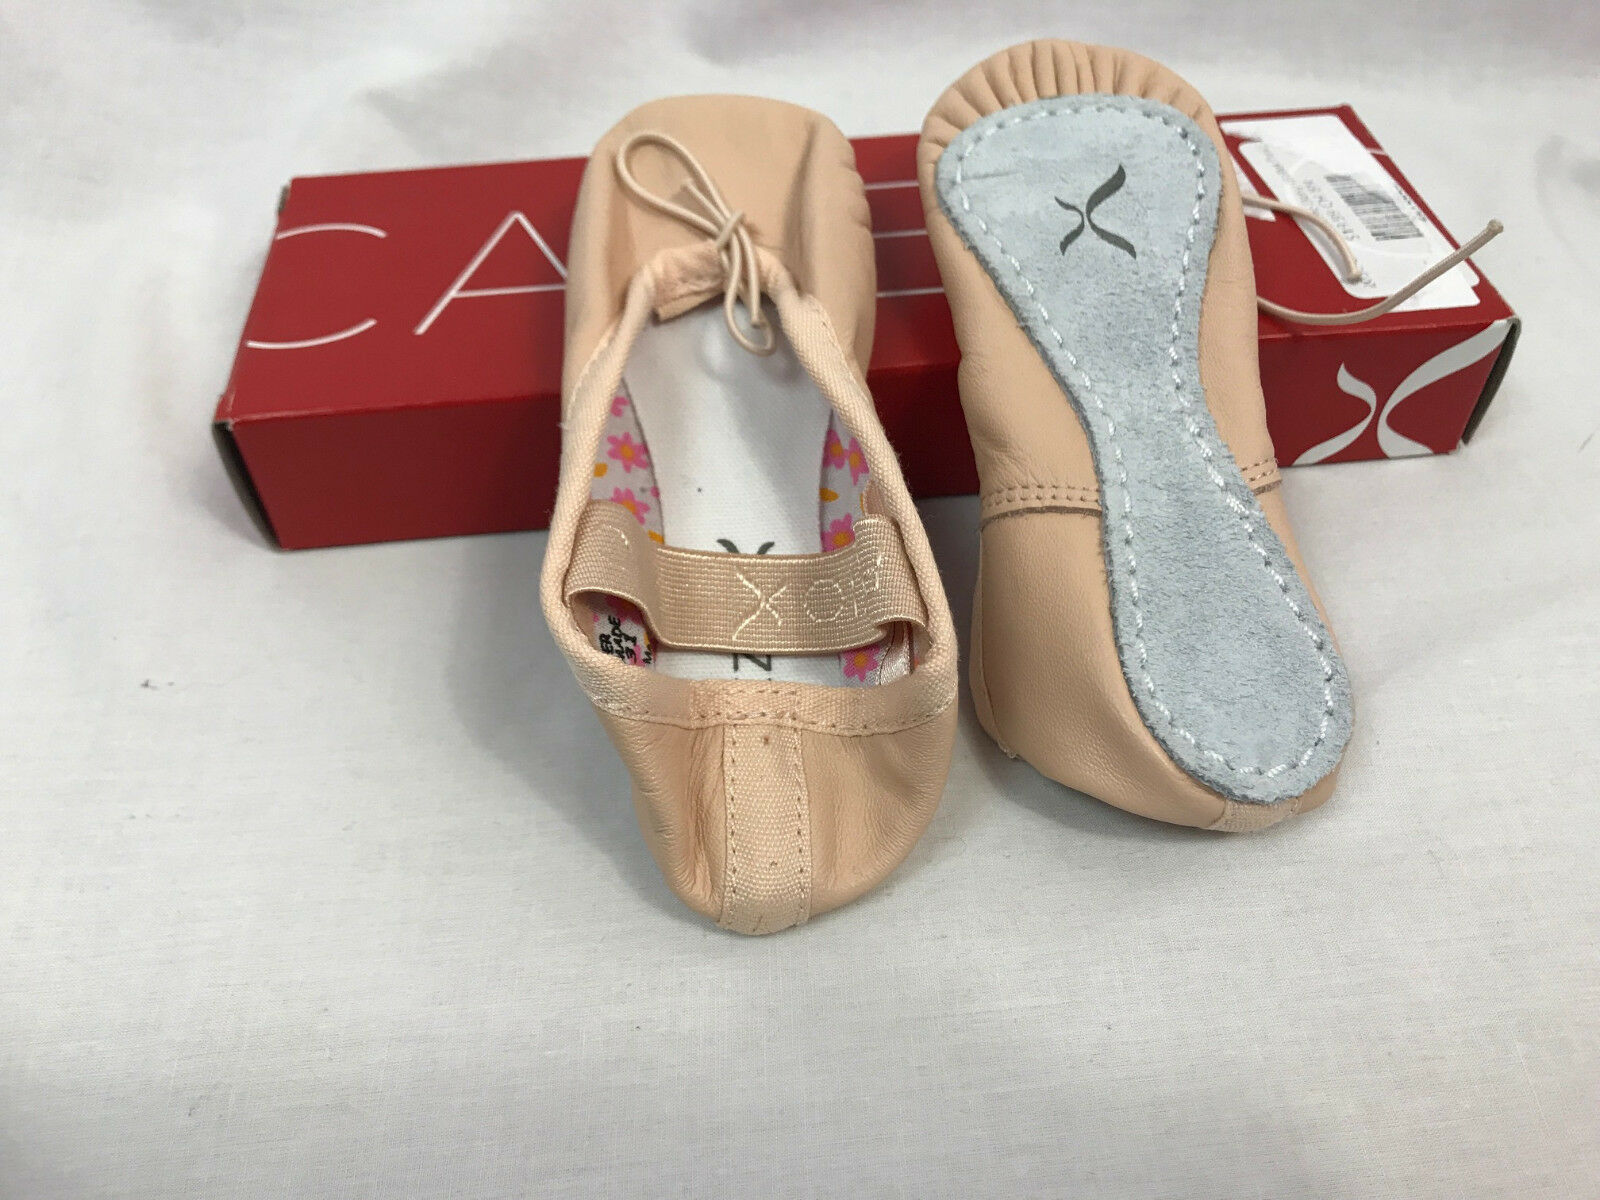 Capezio Girls Daisy Full Sole 205C Ballet Pink Shoes, Child 1 W, New in Box